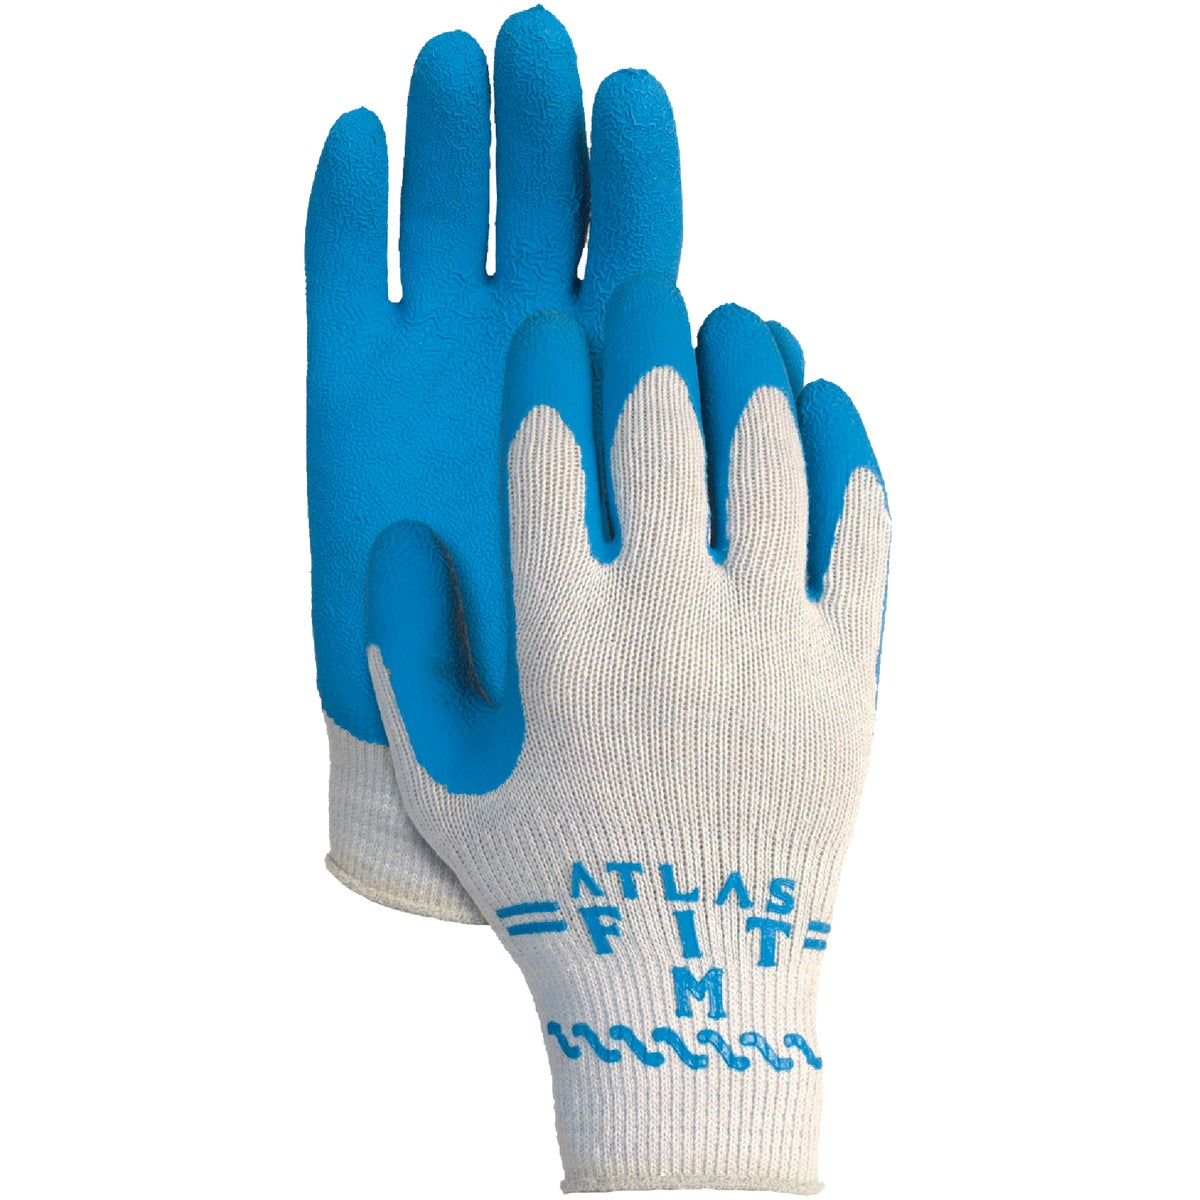 XL PALM DIPPED GLOVE - 300XL-10.RT by Showa Best Glove